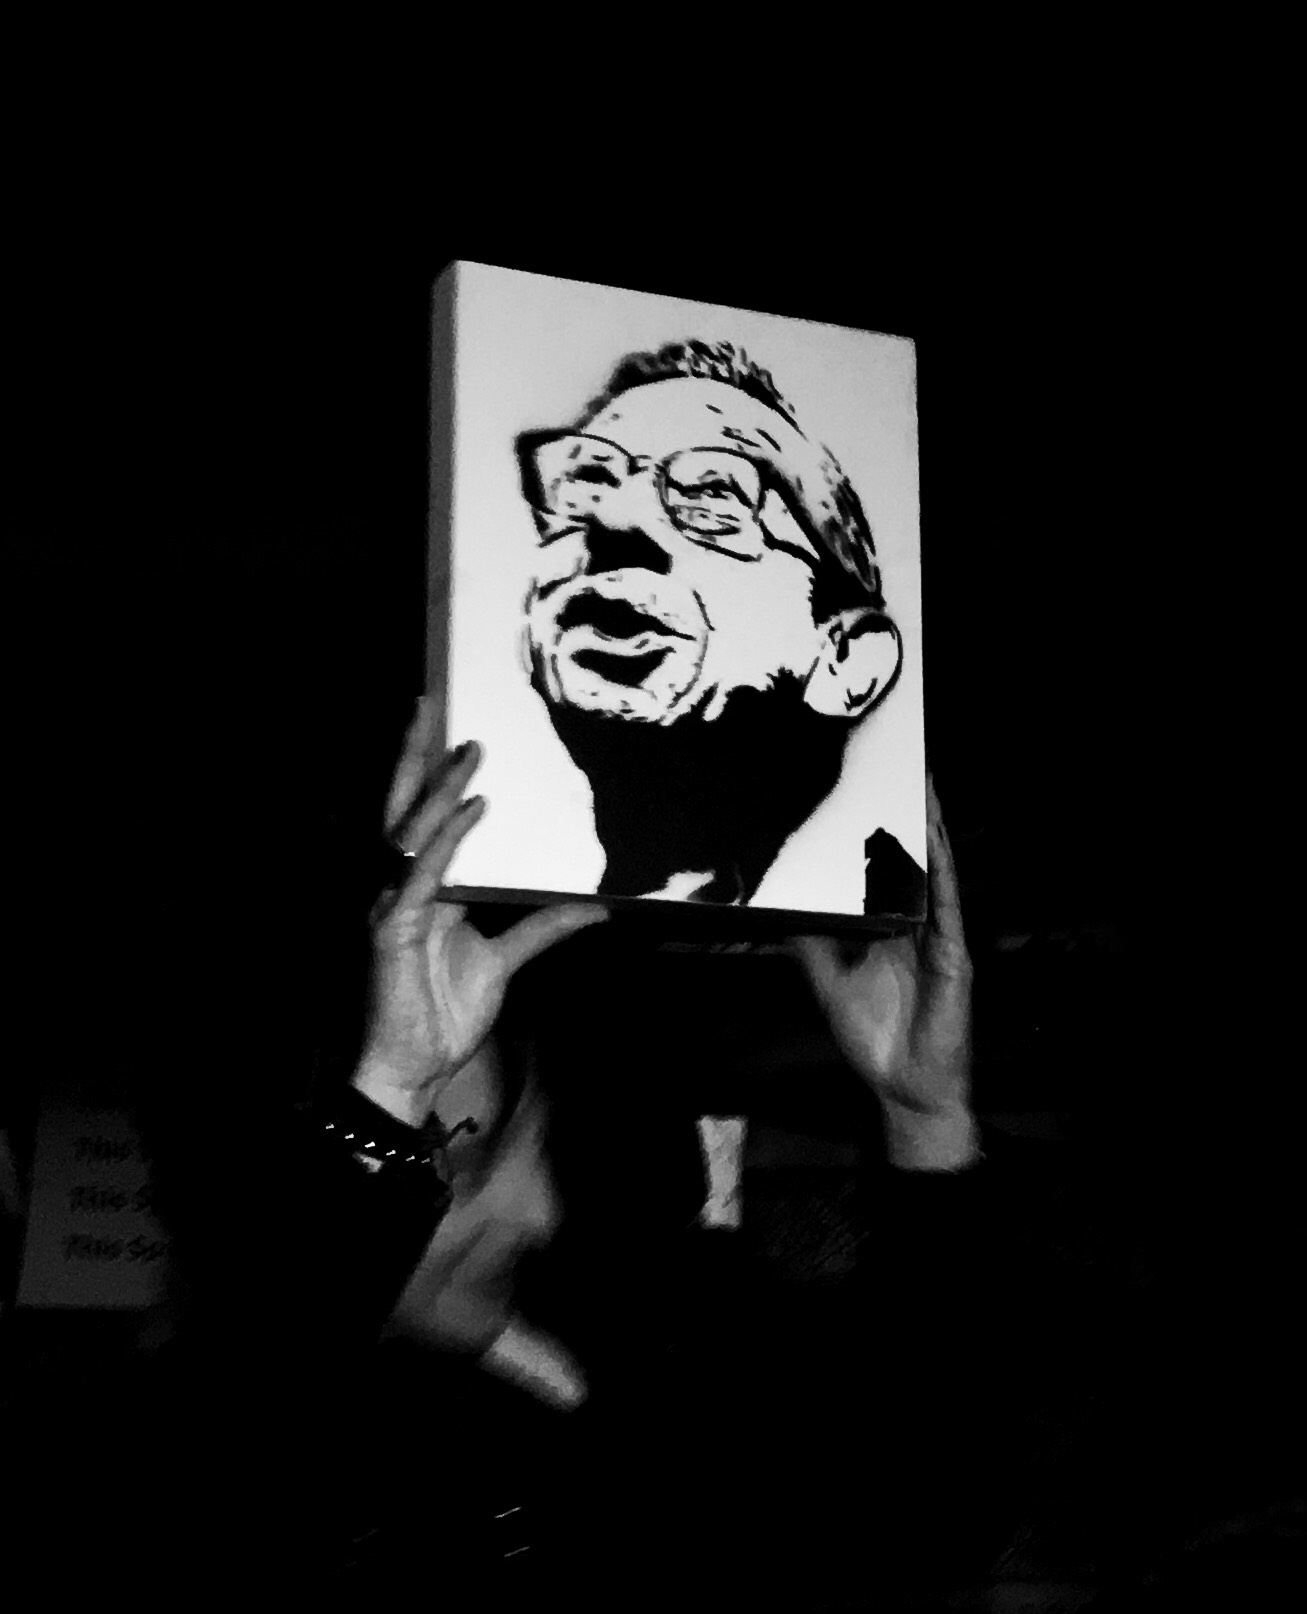 Fundraiser for the late DJ Derek, as photographed by Colin Moody in the book Stokes Croft and Montpelier